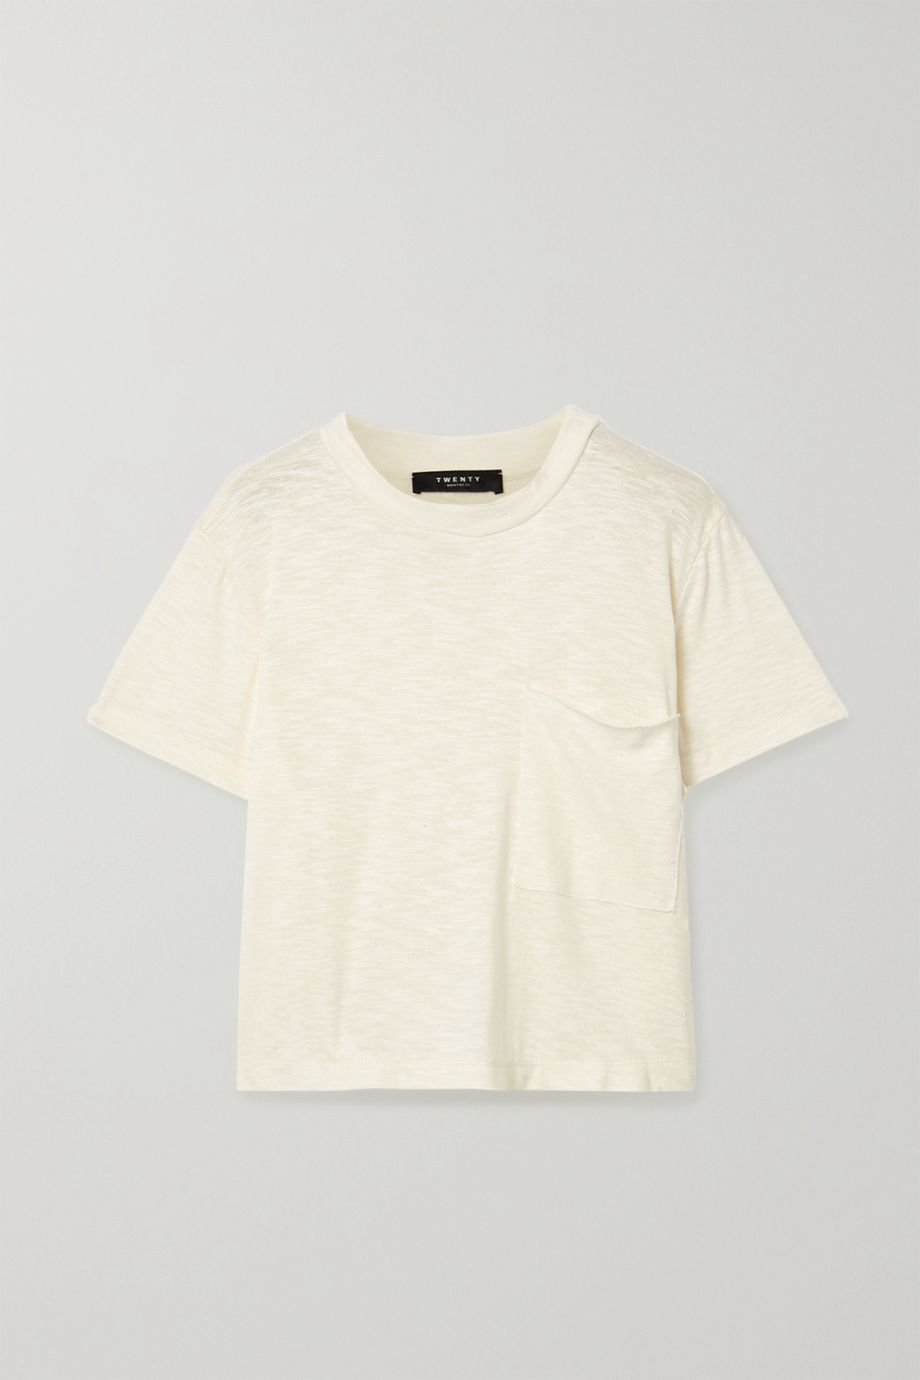 TWENTY Montréal Brooks cropped slub jersey T-shirt